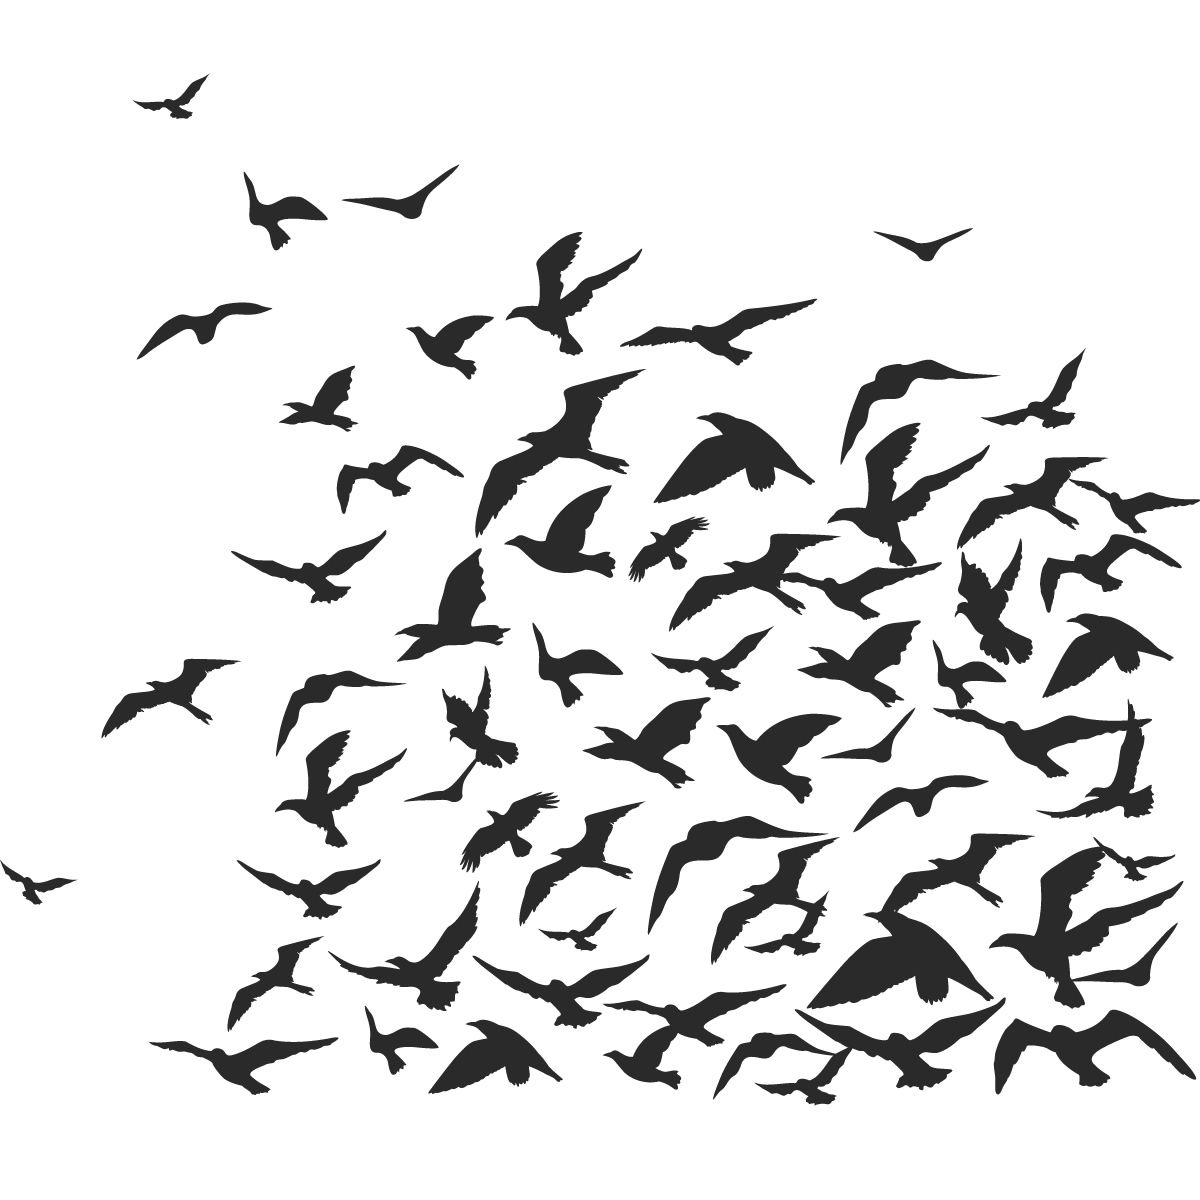 Flock of birds animals wall art decal wall stickers transfers ebay